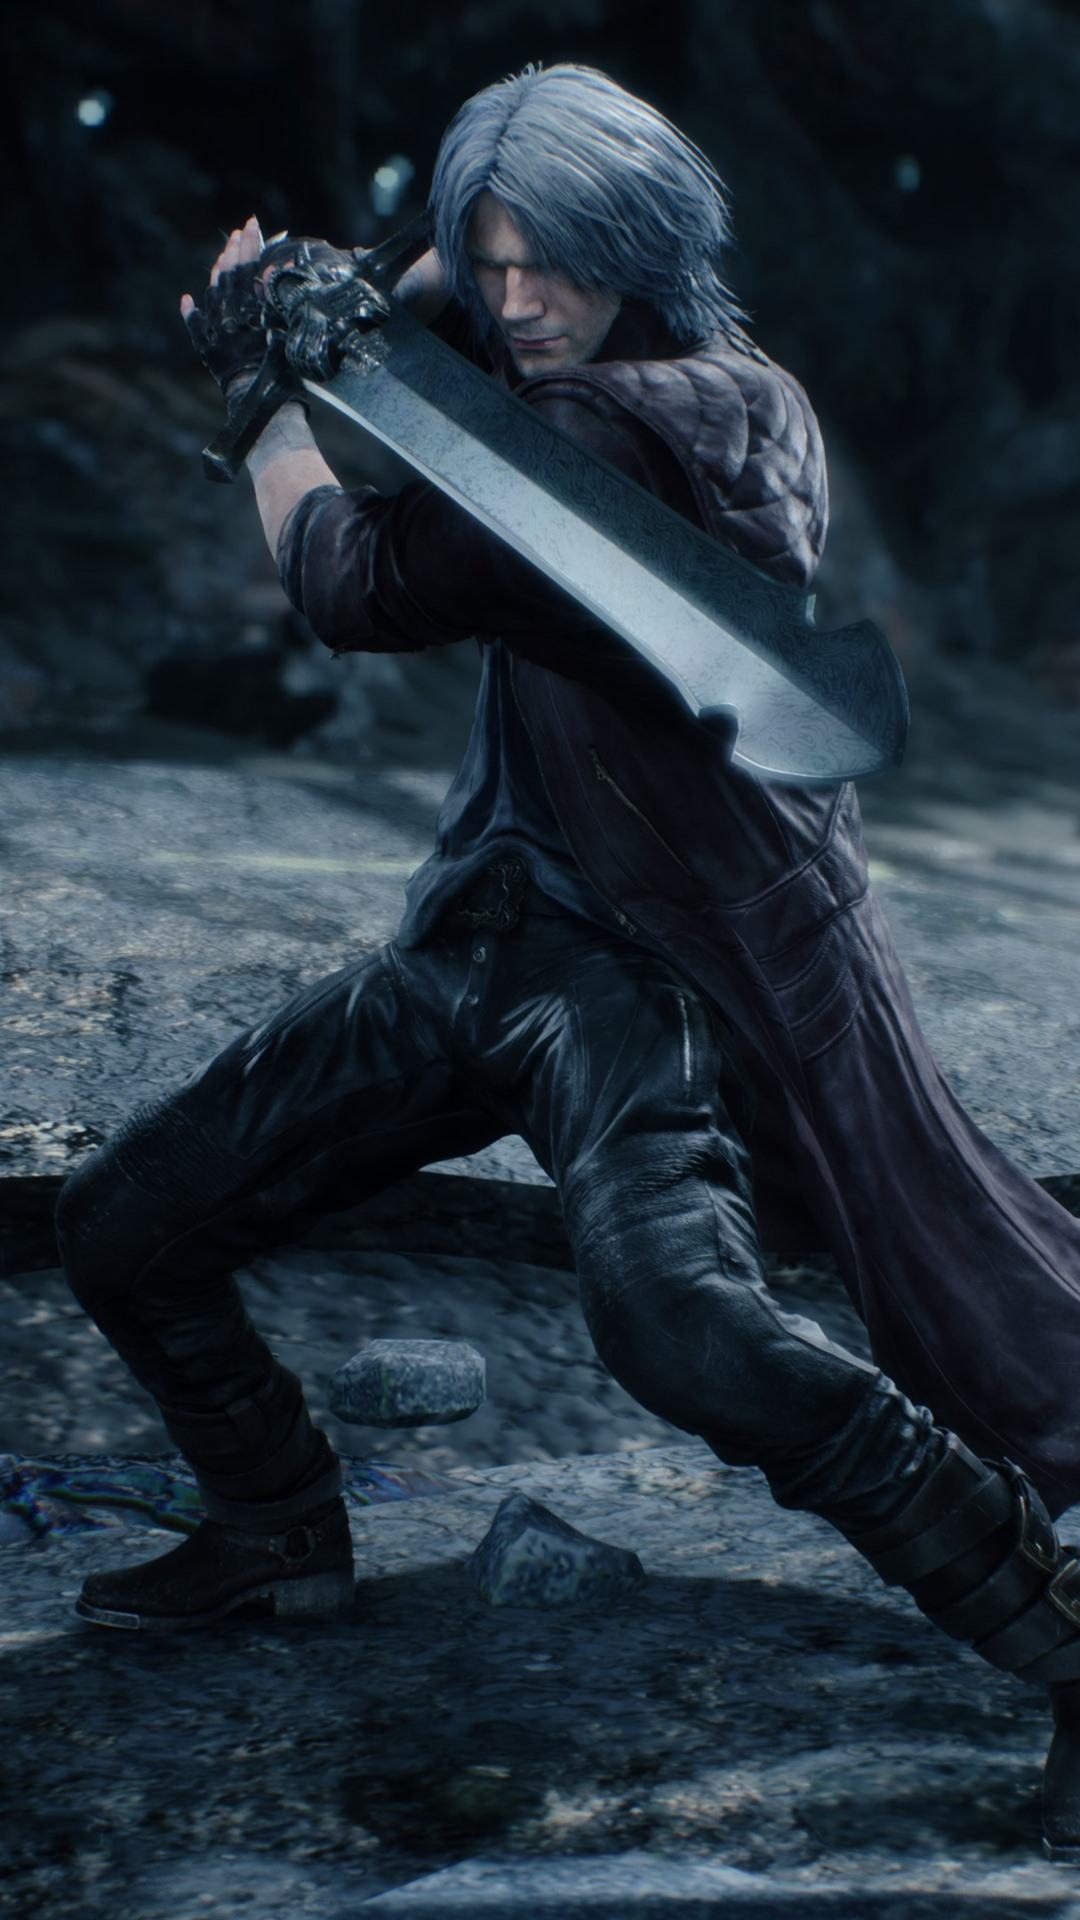 Devil May Cry 5 Sword 1080x1920 Iphone 8 7 6 6s Plus Wallpaper